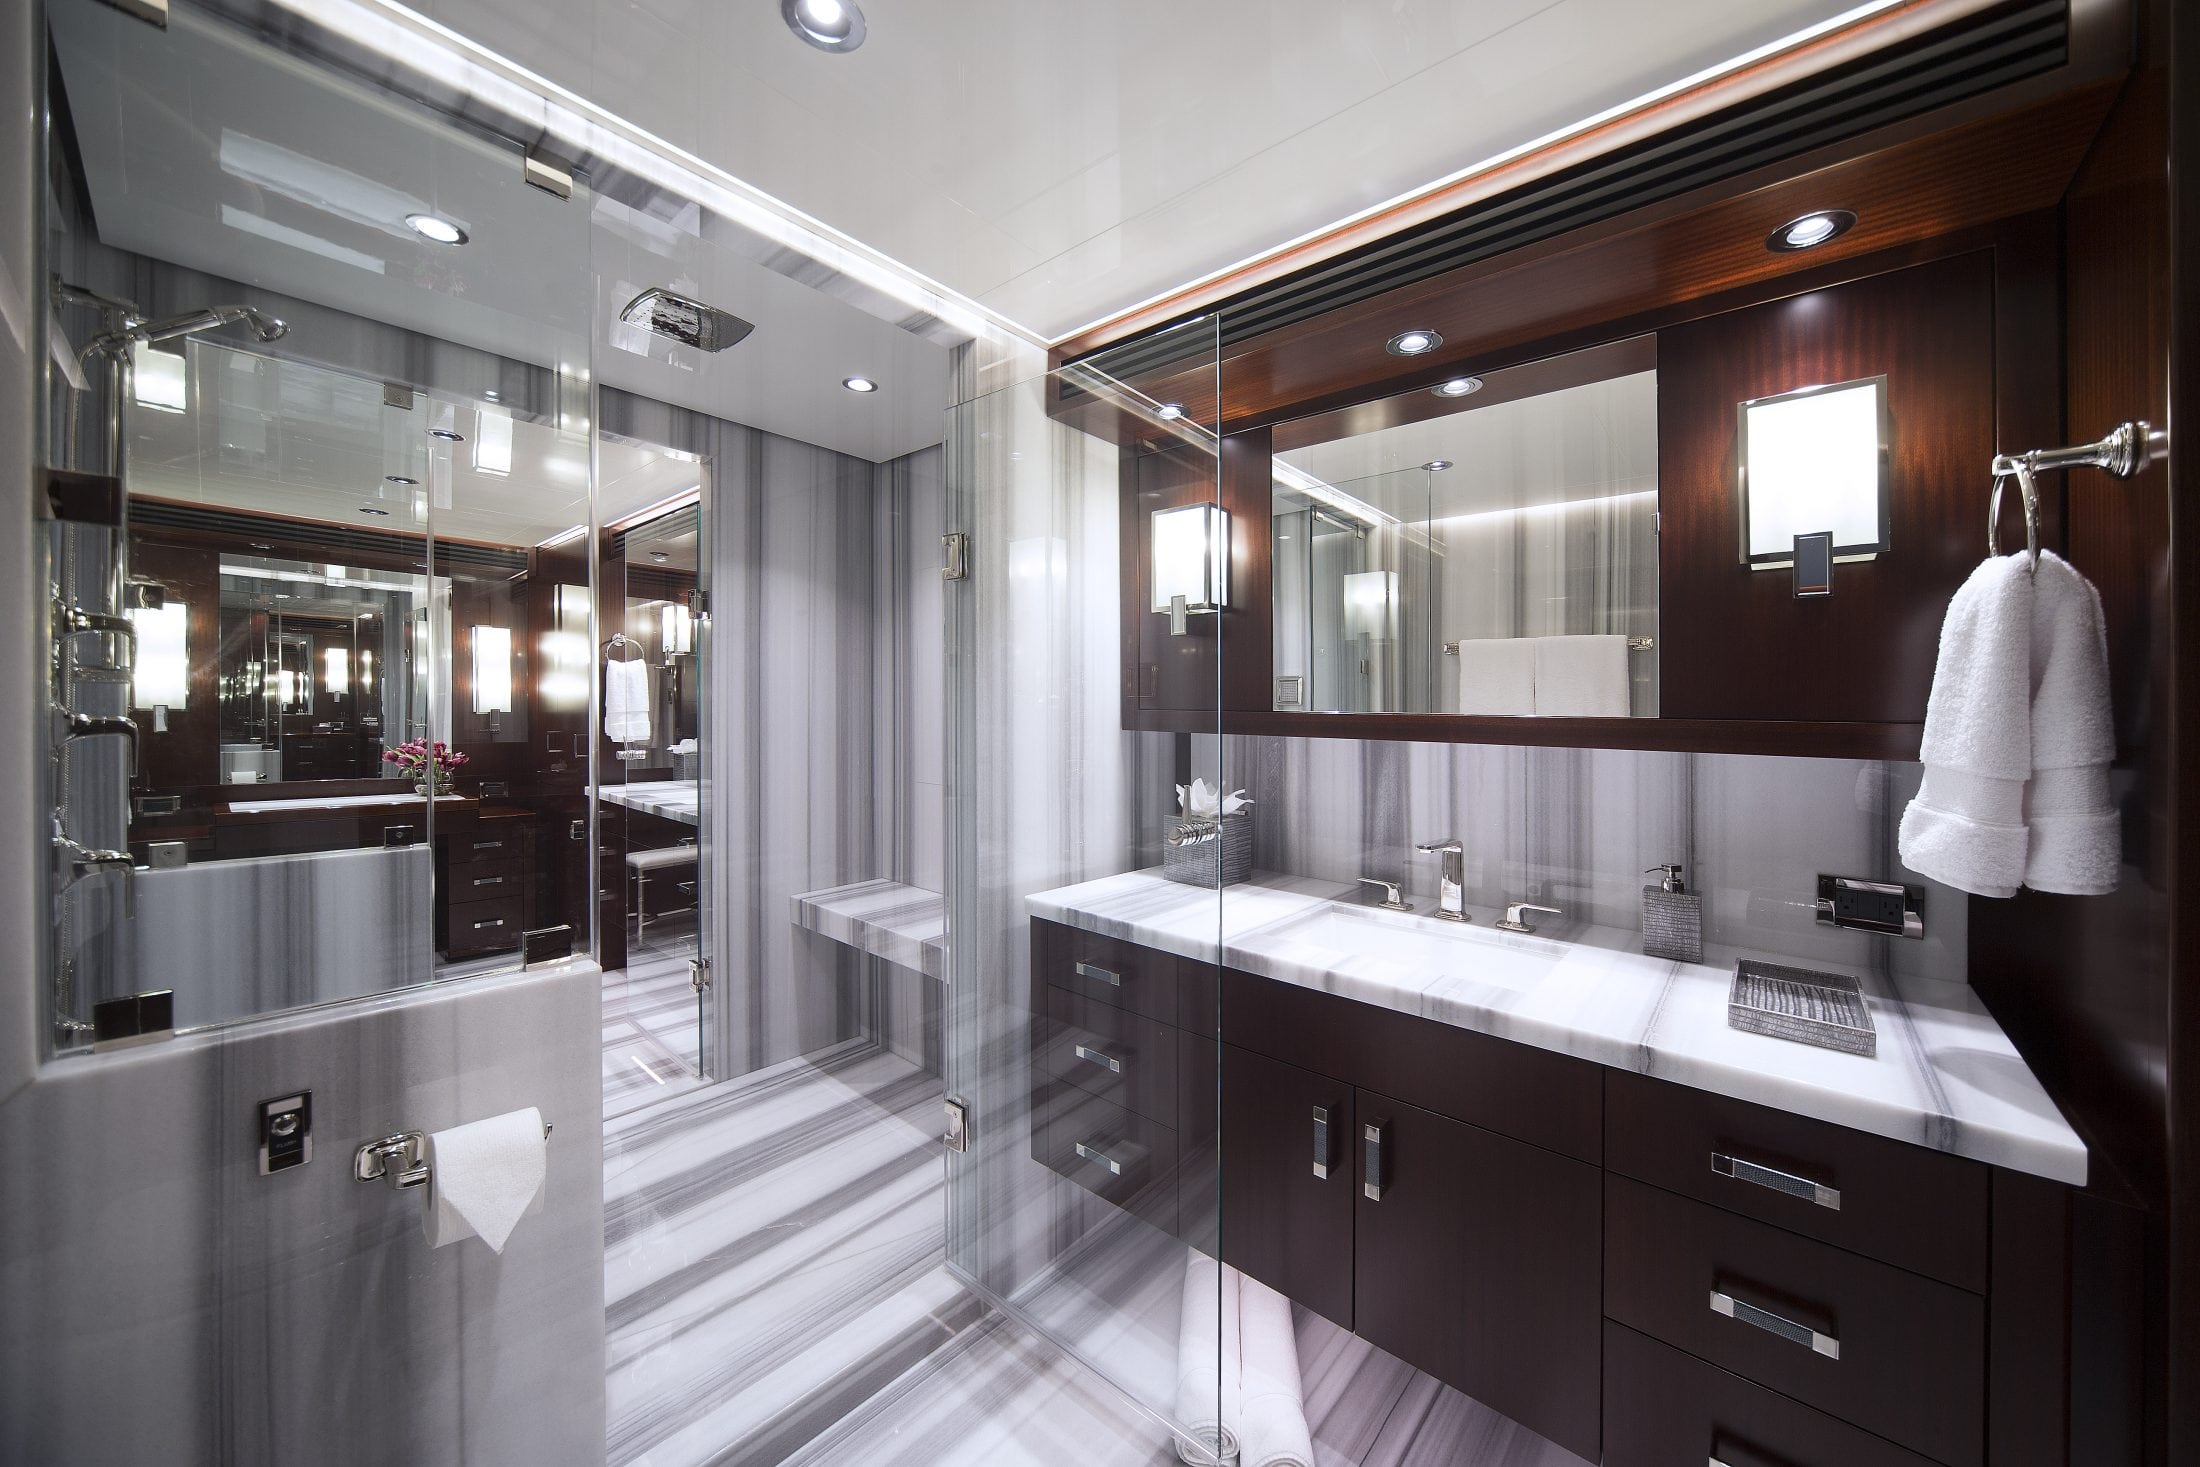 125' (38M) Westport Eccentric Master Bathroom